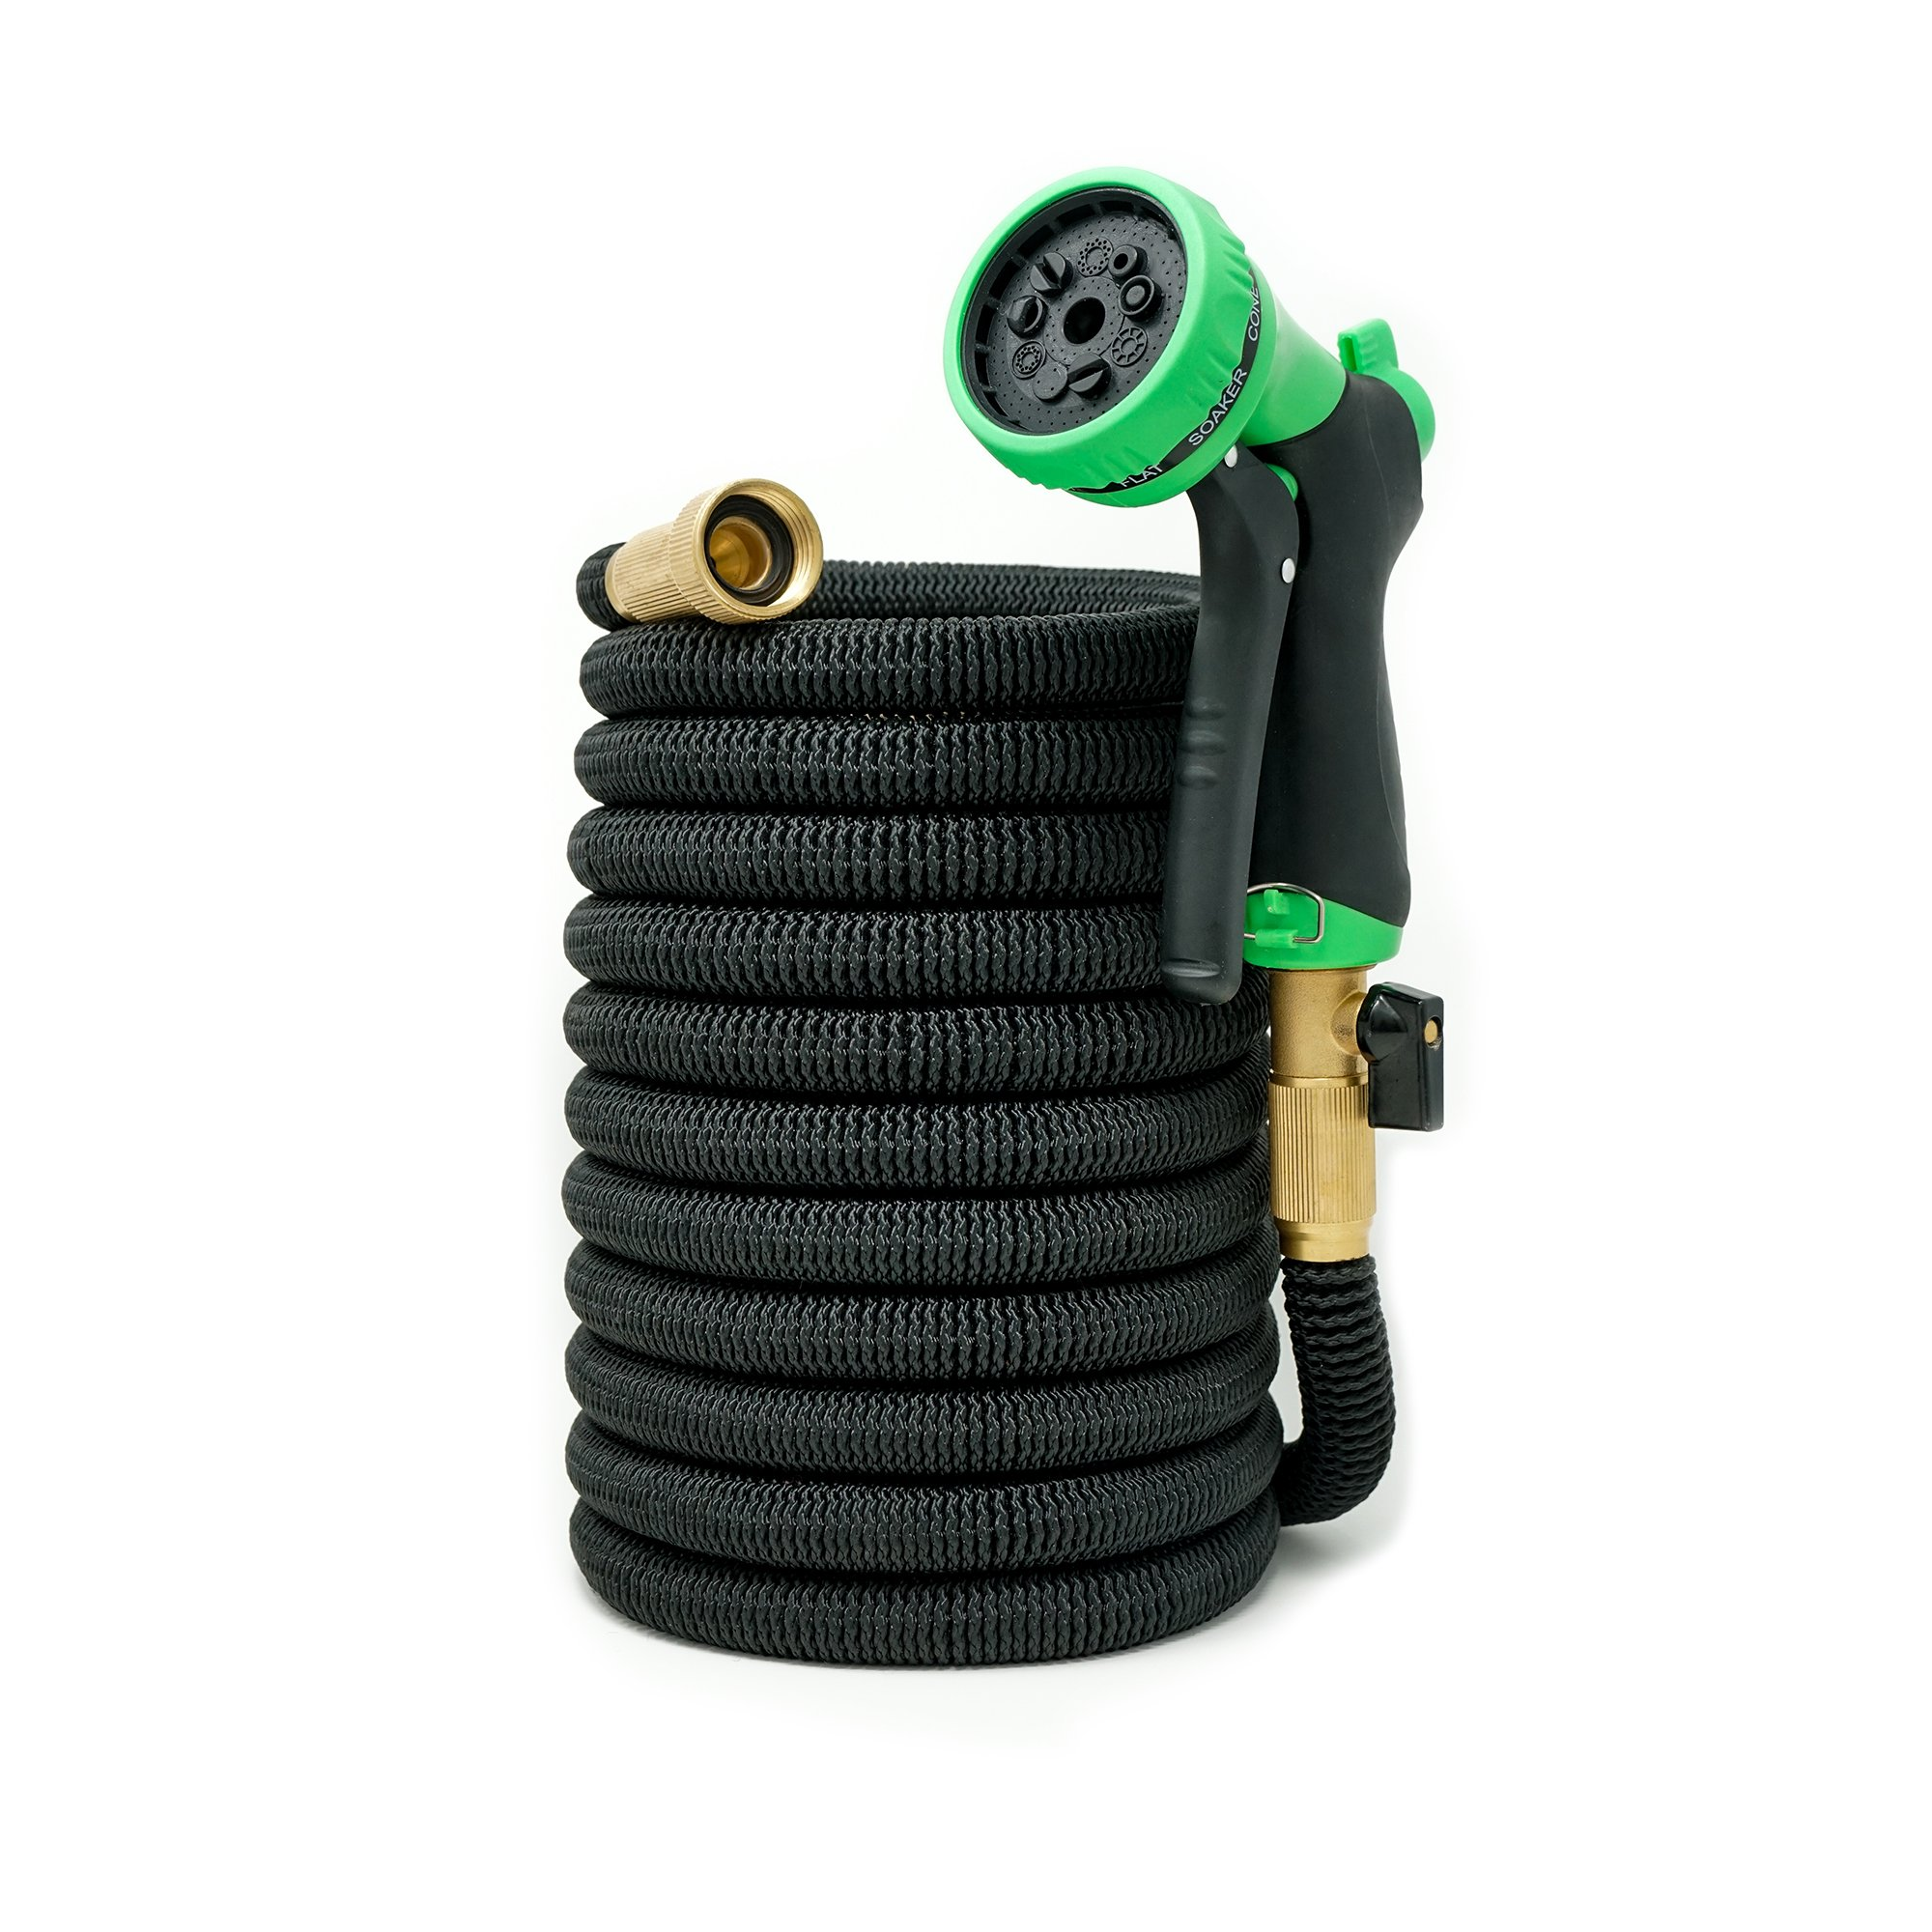 50ft Expandable Hose - NEW 2018 Heavy Duty Expandable Garden Hose - Triple Latex Core, 3/4 Brass Connectors, Extra Strength Fabric, Expanding Garden Hose with 9 Function Spray Nozzle - 1 Year Warranty